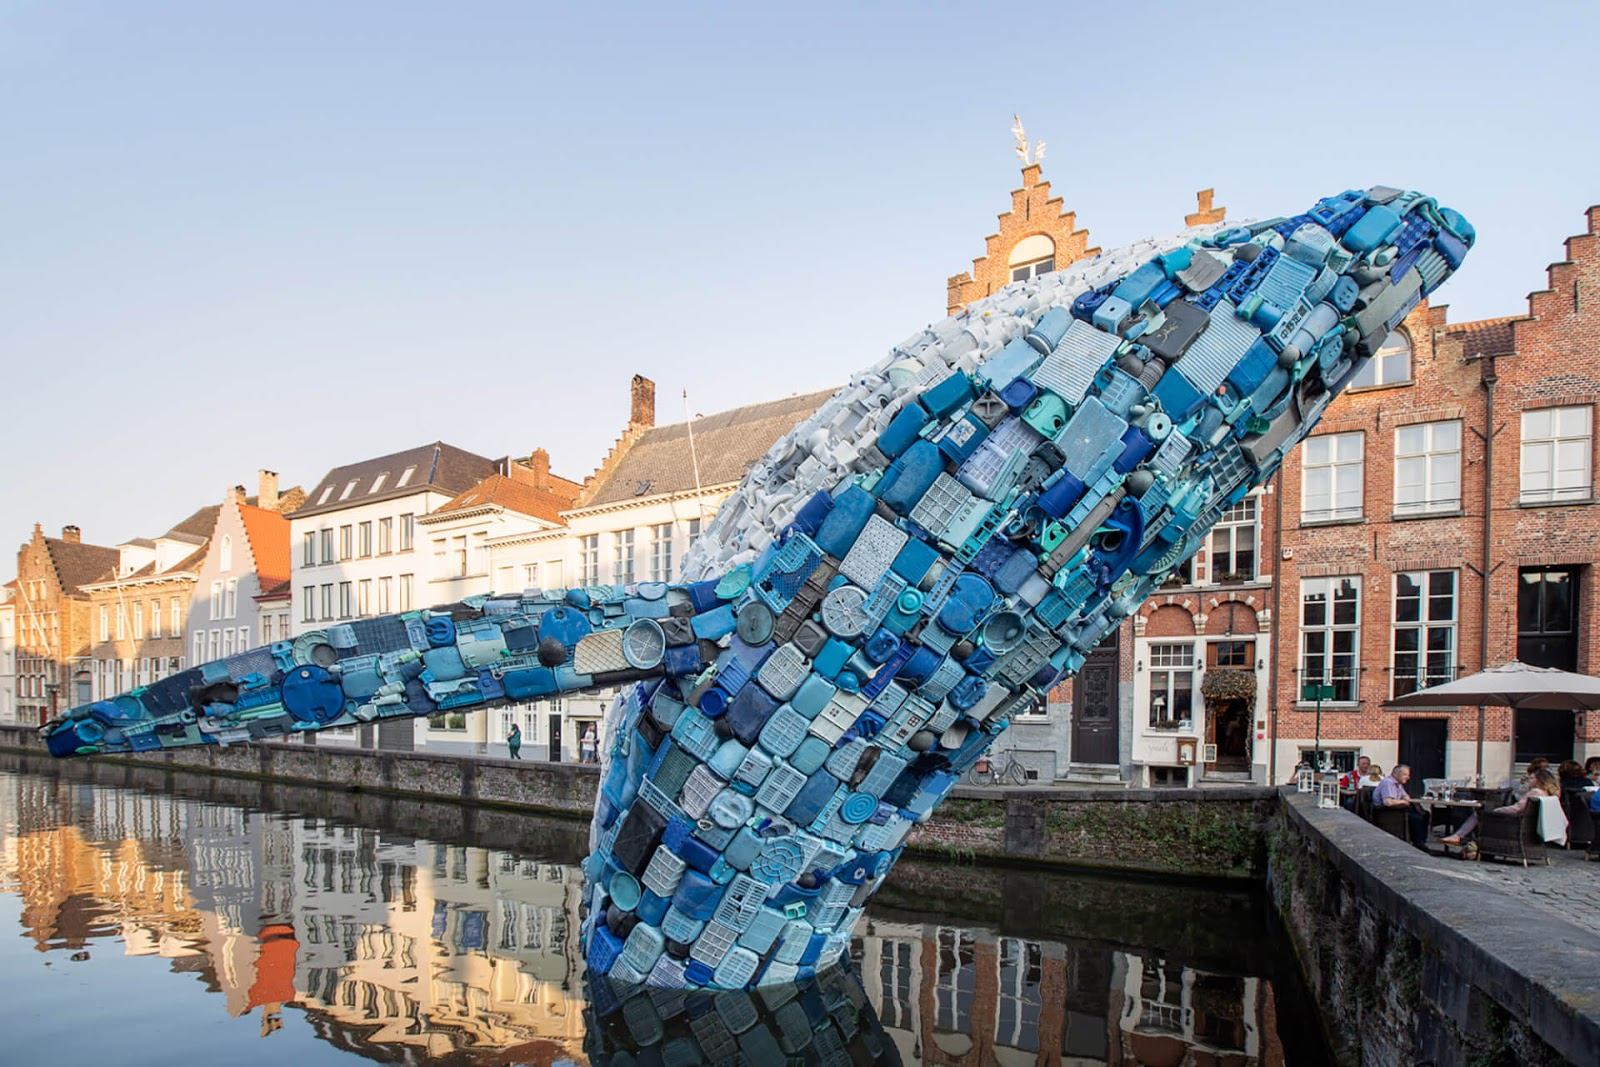 38-Foot-Tall Whale Was Made Of 10,000 Pounds of Plastic Waste Found In The Ocean As A Way To Raise Awareness